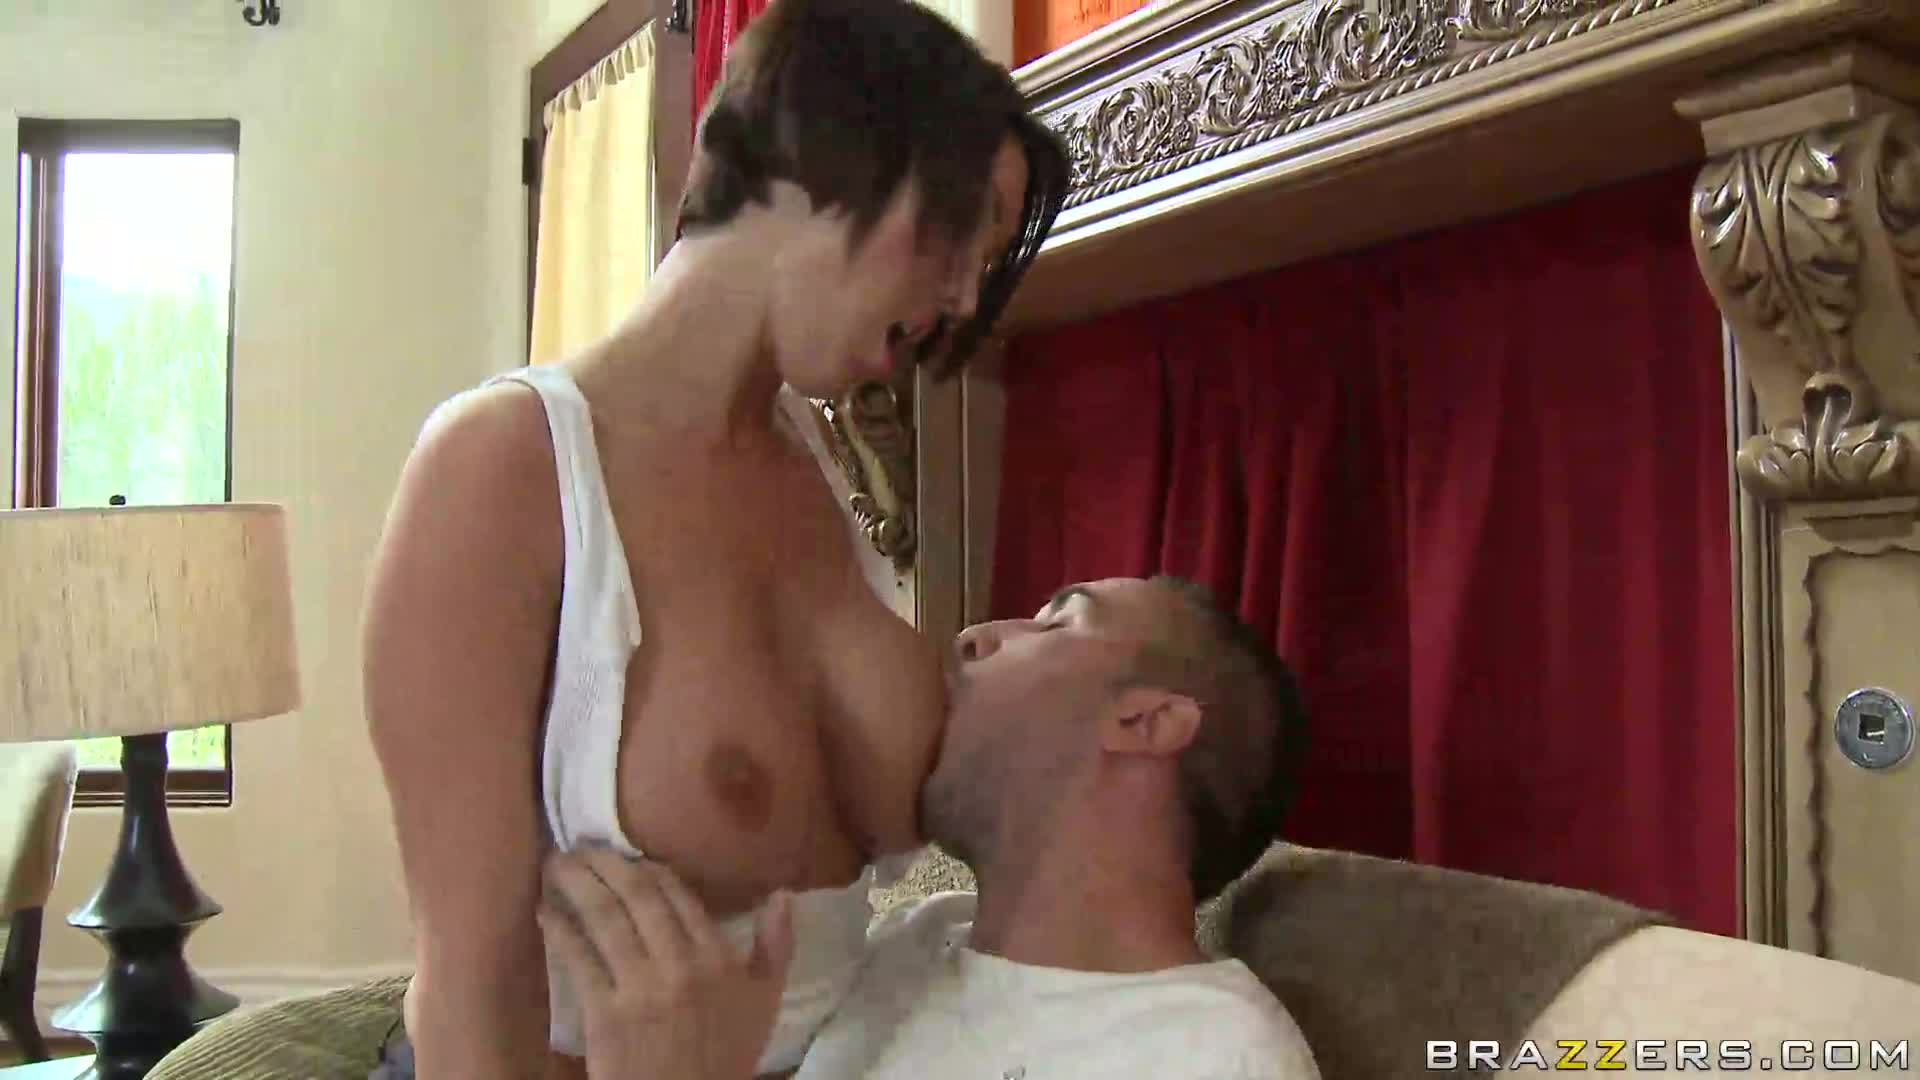 Blonde Big Tits Riding Dildo